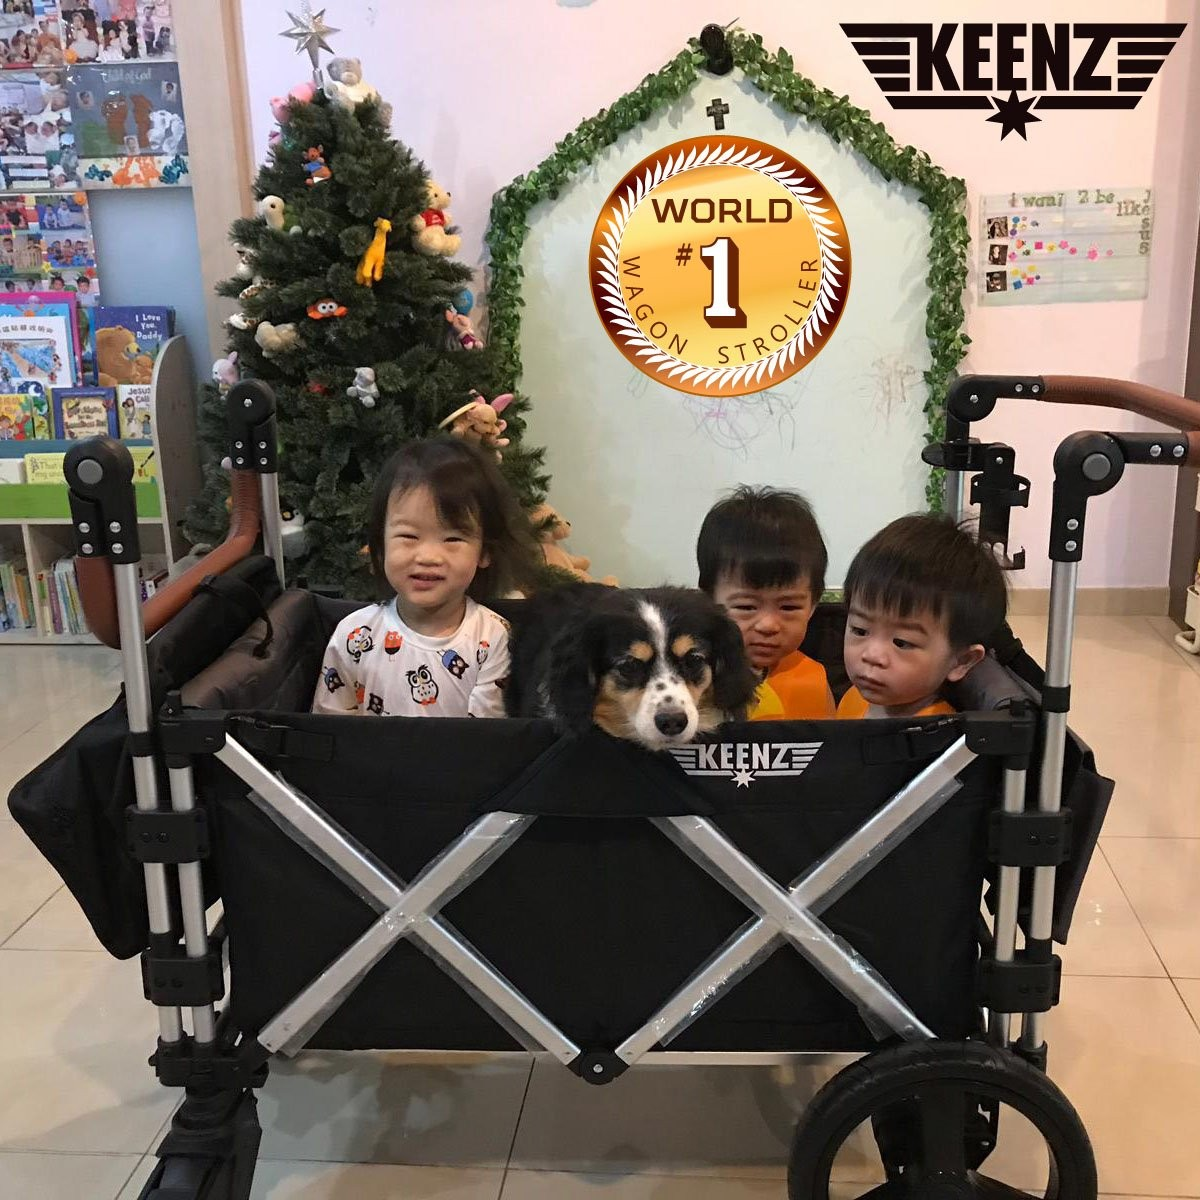 Triple Pet Stroller Keenz 7s Premium Deluxe Foldable Wagon Stroller World No 1 Wagon Stroller Freebies